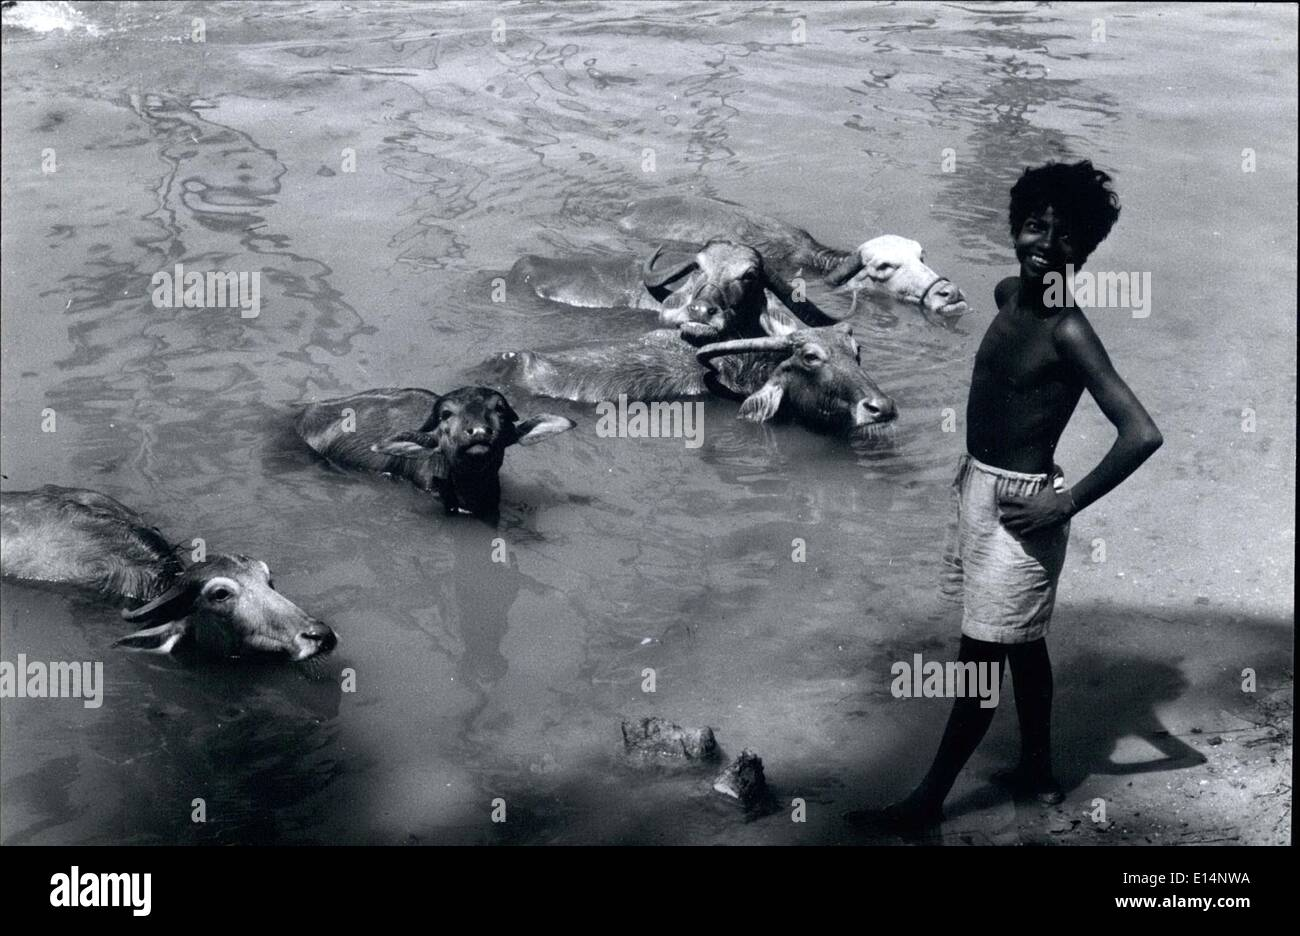 Apr. 18, 2012 - A water-buffalo tender looks after his charges in a canal at Trivandrum, India. - Stock Image